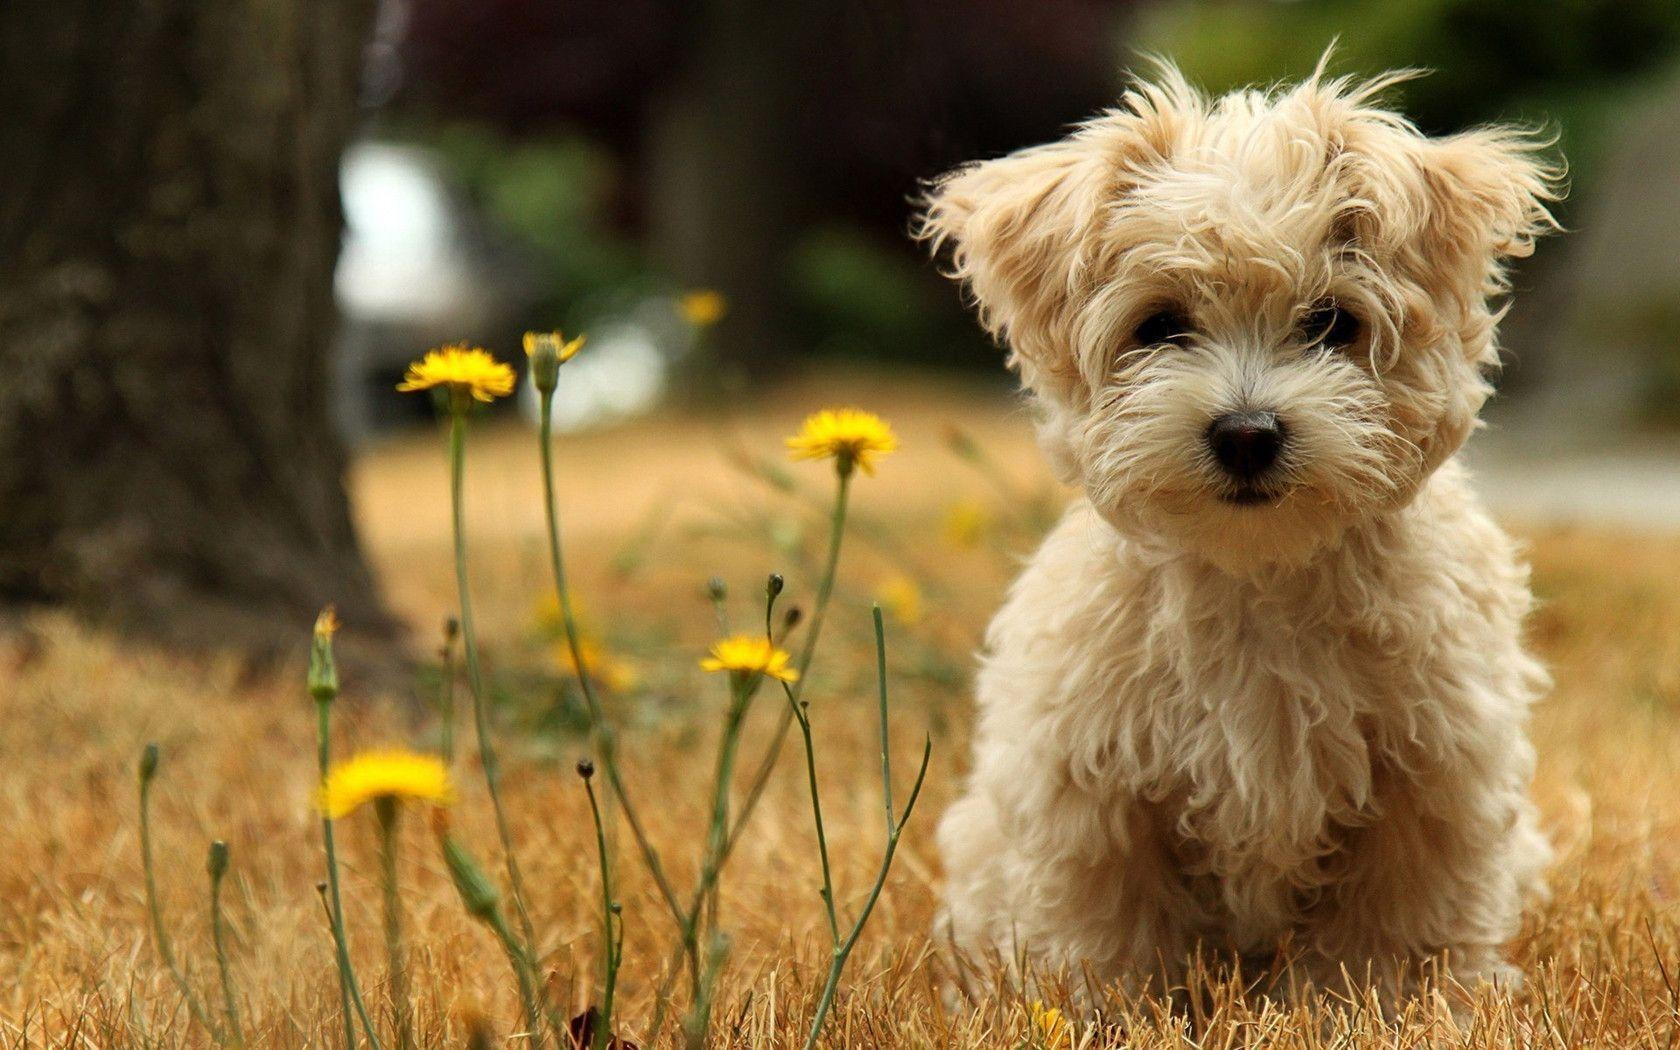 Puppy Desktop Wallpapers Top Free Puppy Desktop Backgrounds Wallpaperaccess